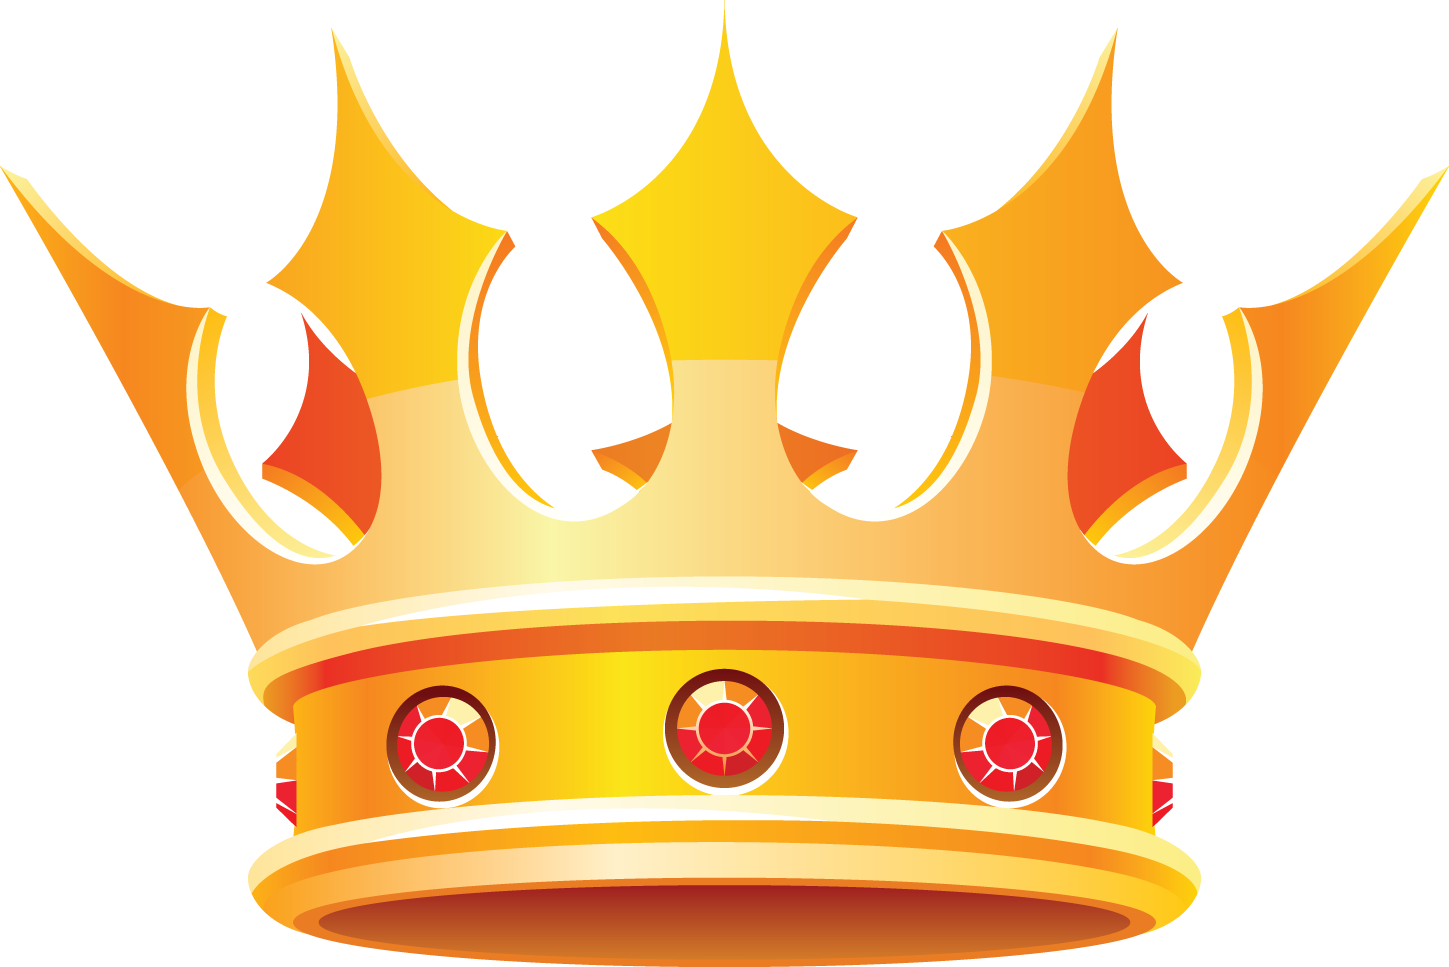 Queen crown clipart svg free library Queen Crown Clipart at GetDrawings.com | Free for personal use Queen ... svg free library